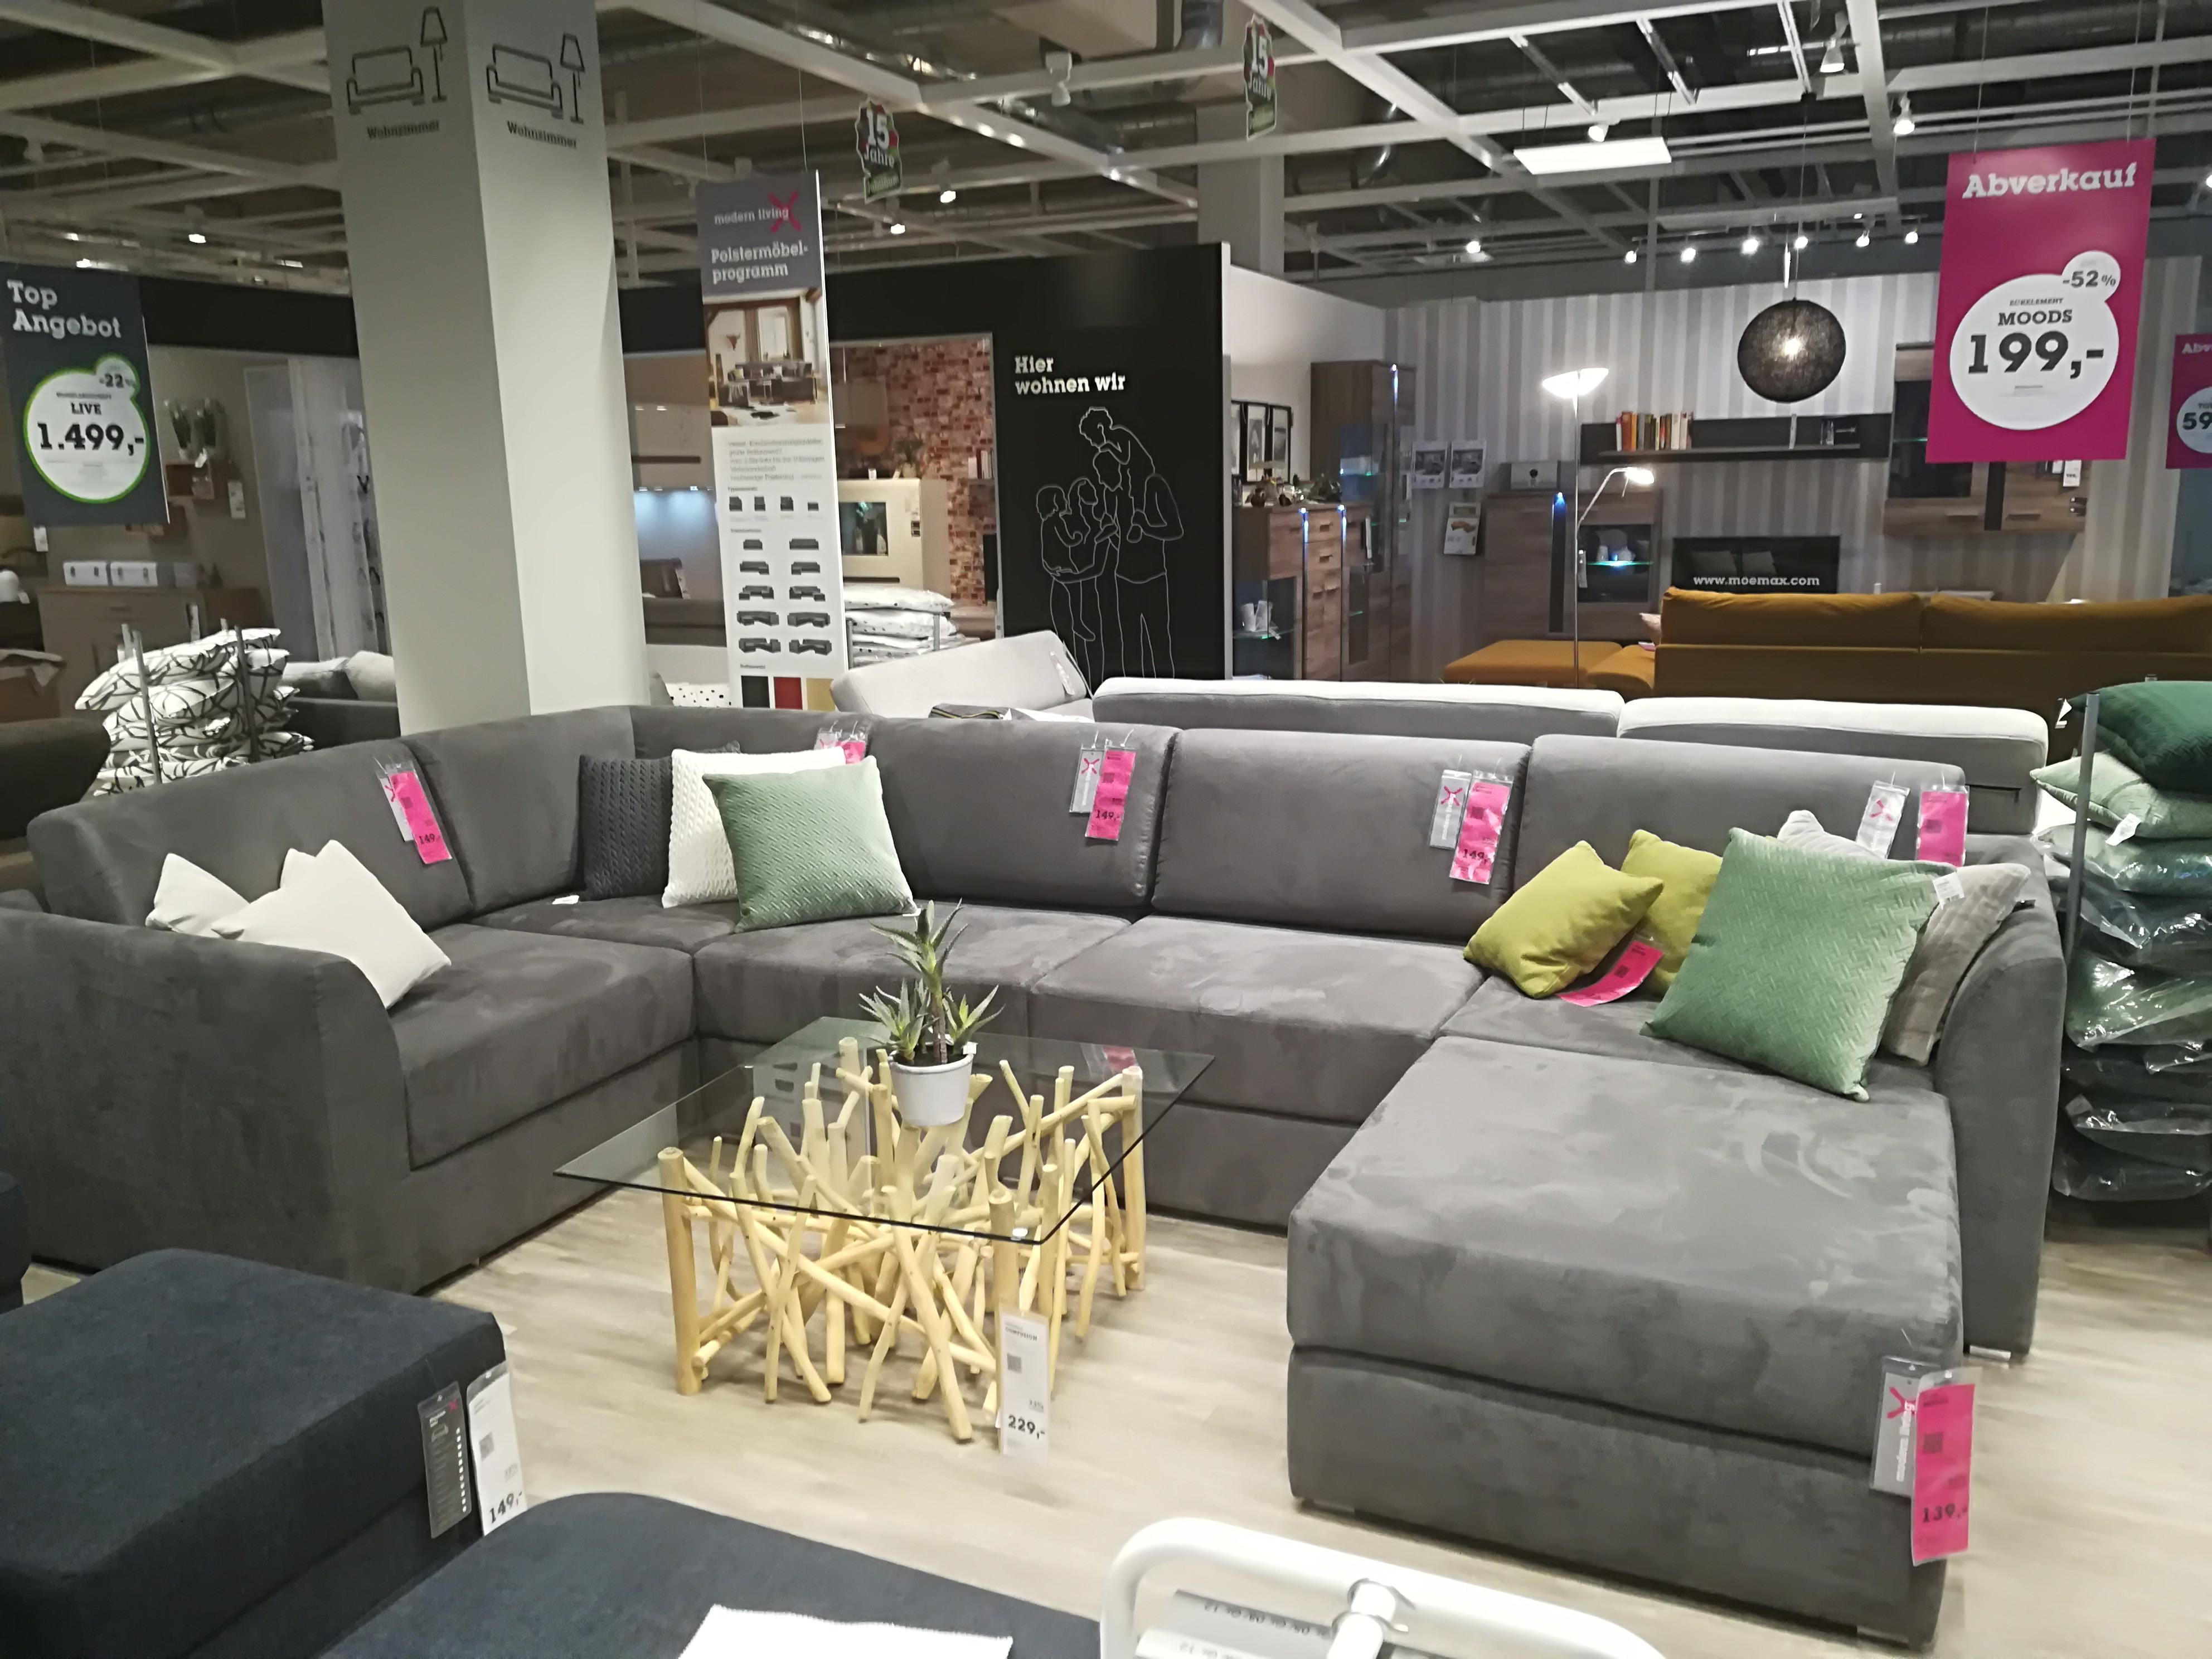 sofa selbst awesome sofa selbst beziehen polsterei polsterei und sattlerei with sofa selbst. Black Bedroom Furniture Sets. Home Design Ideas